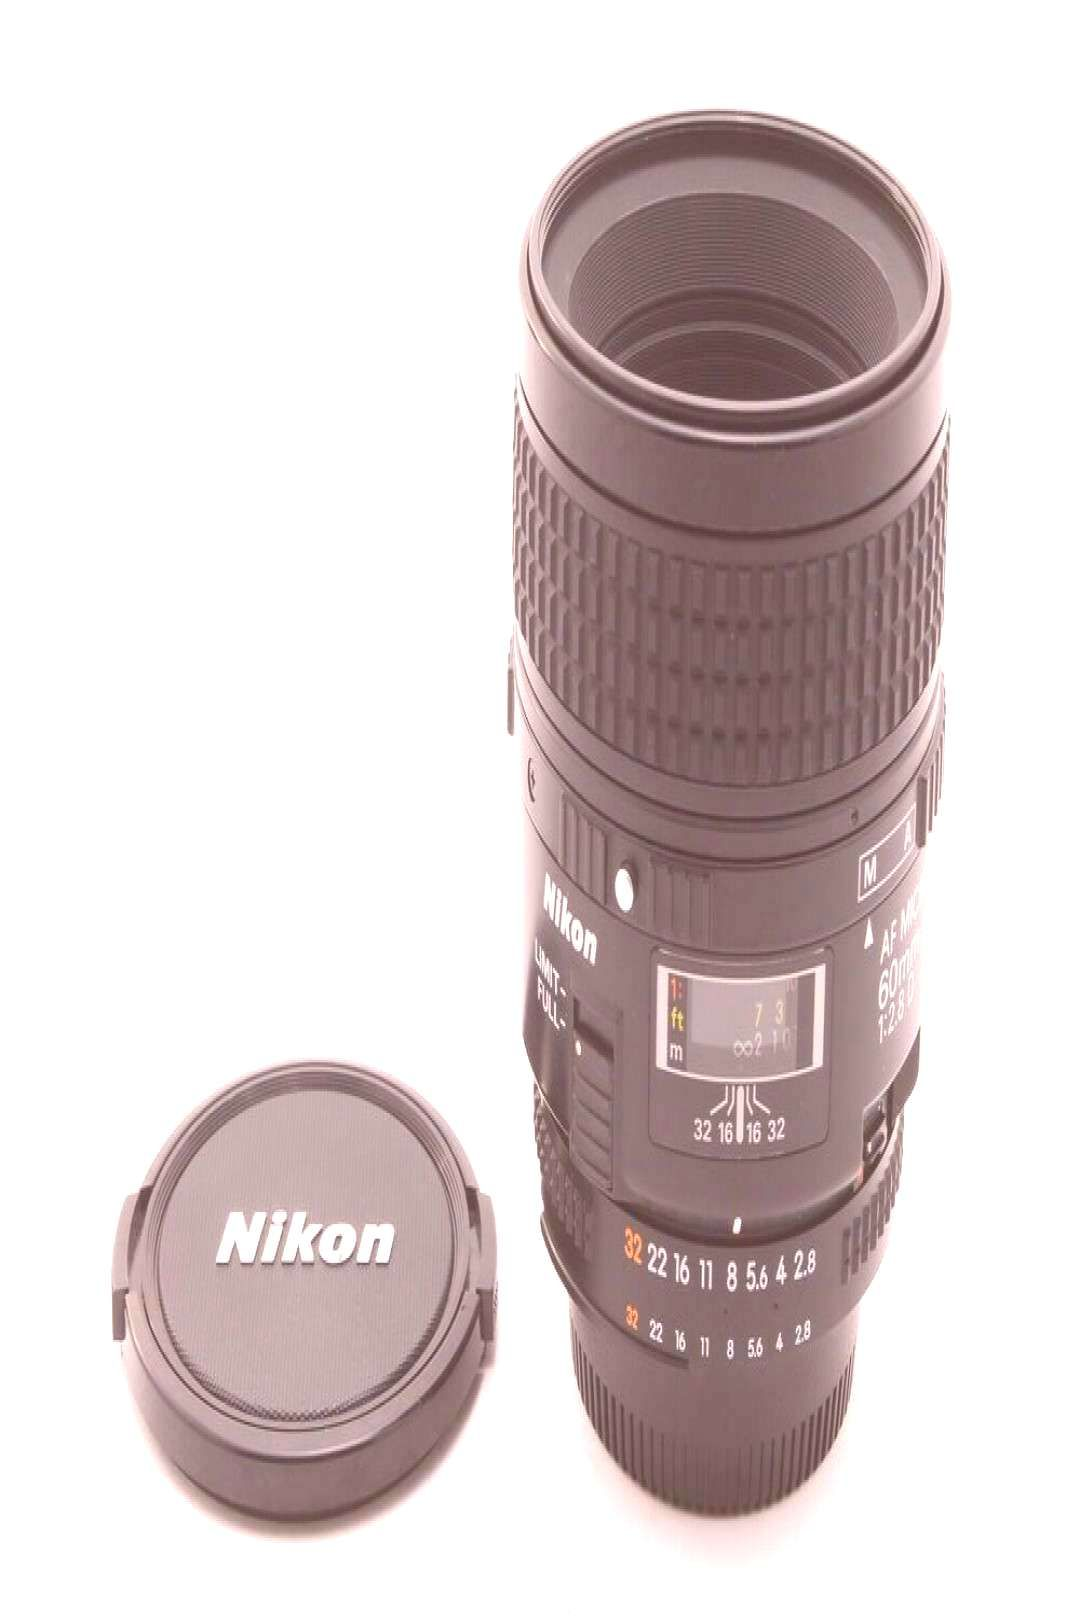 OPTICS NEAR MINT Nikon AF Micro NIKKOR 60mm f2